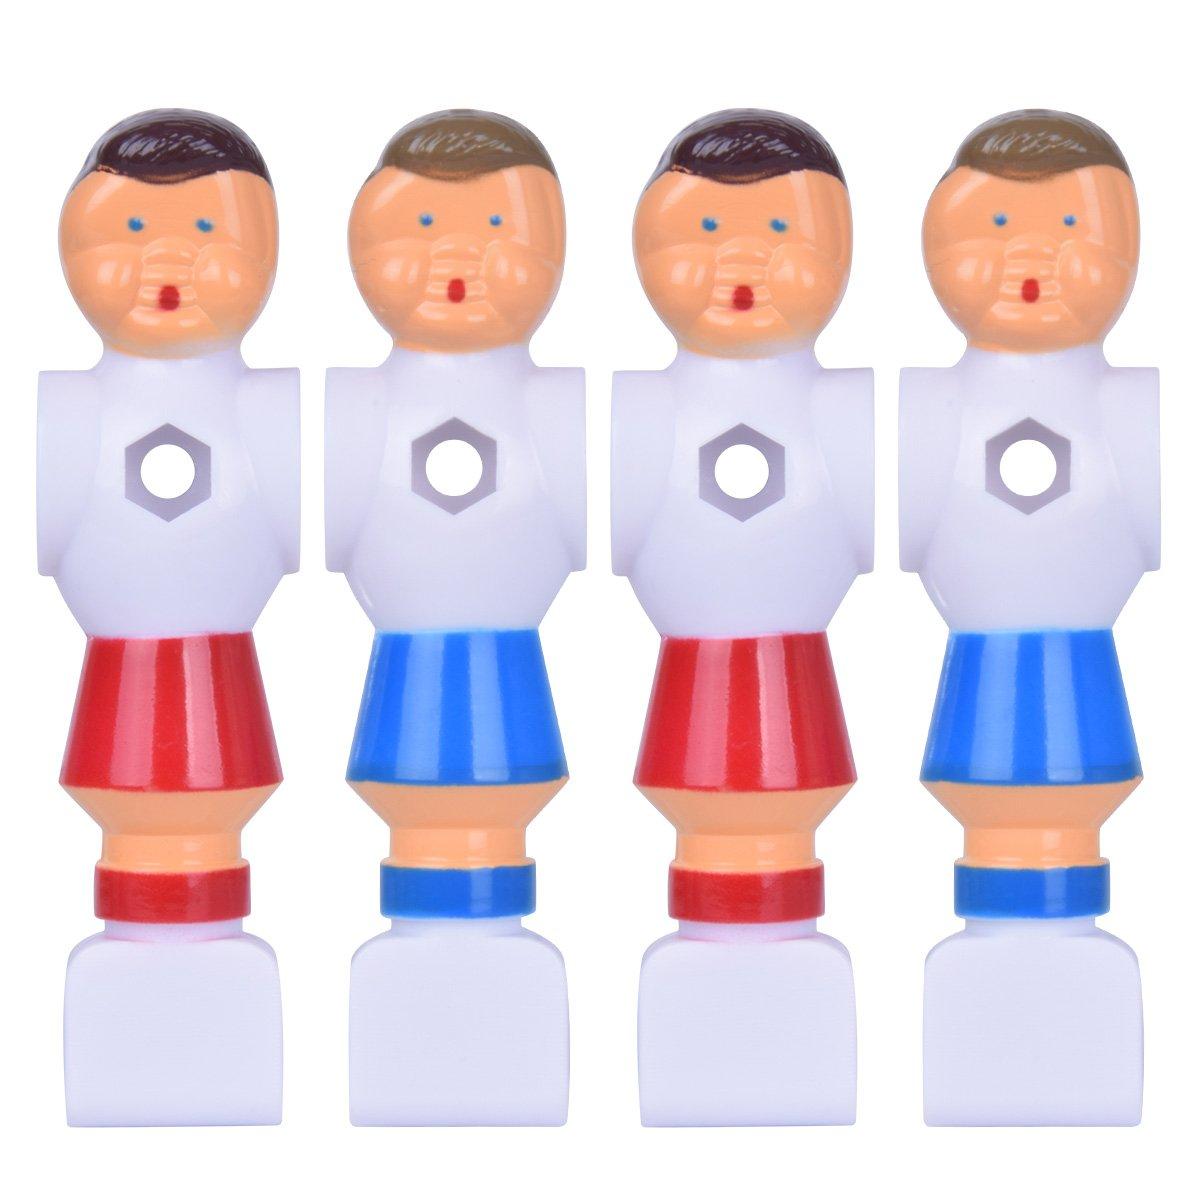 Hotusi 4Pcs Rod Foosball Soccer Table Football Men Player Replacement Parts by Hotusi